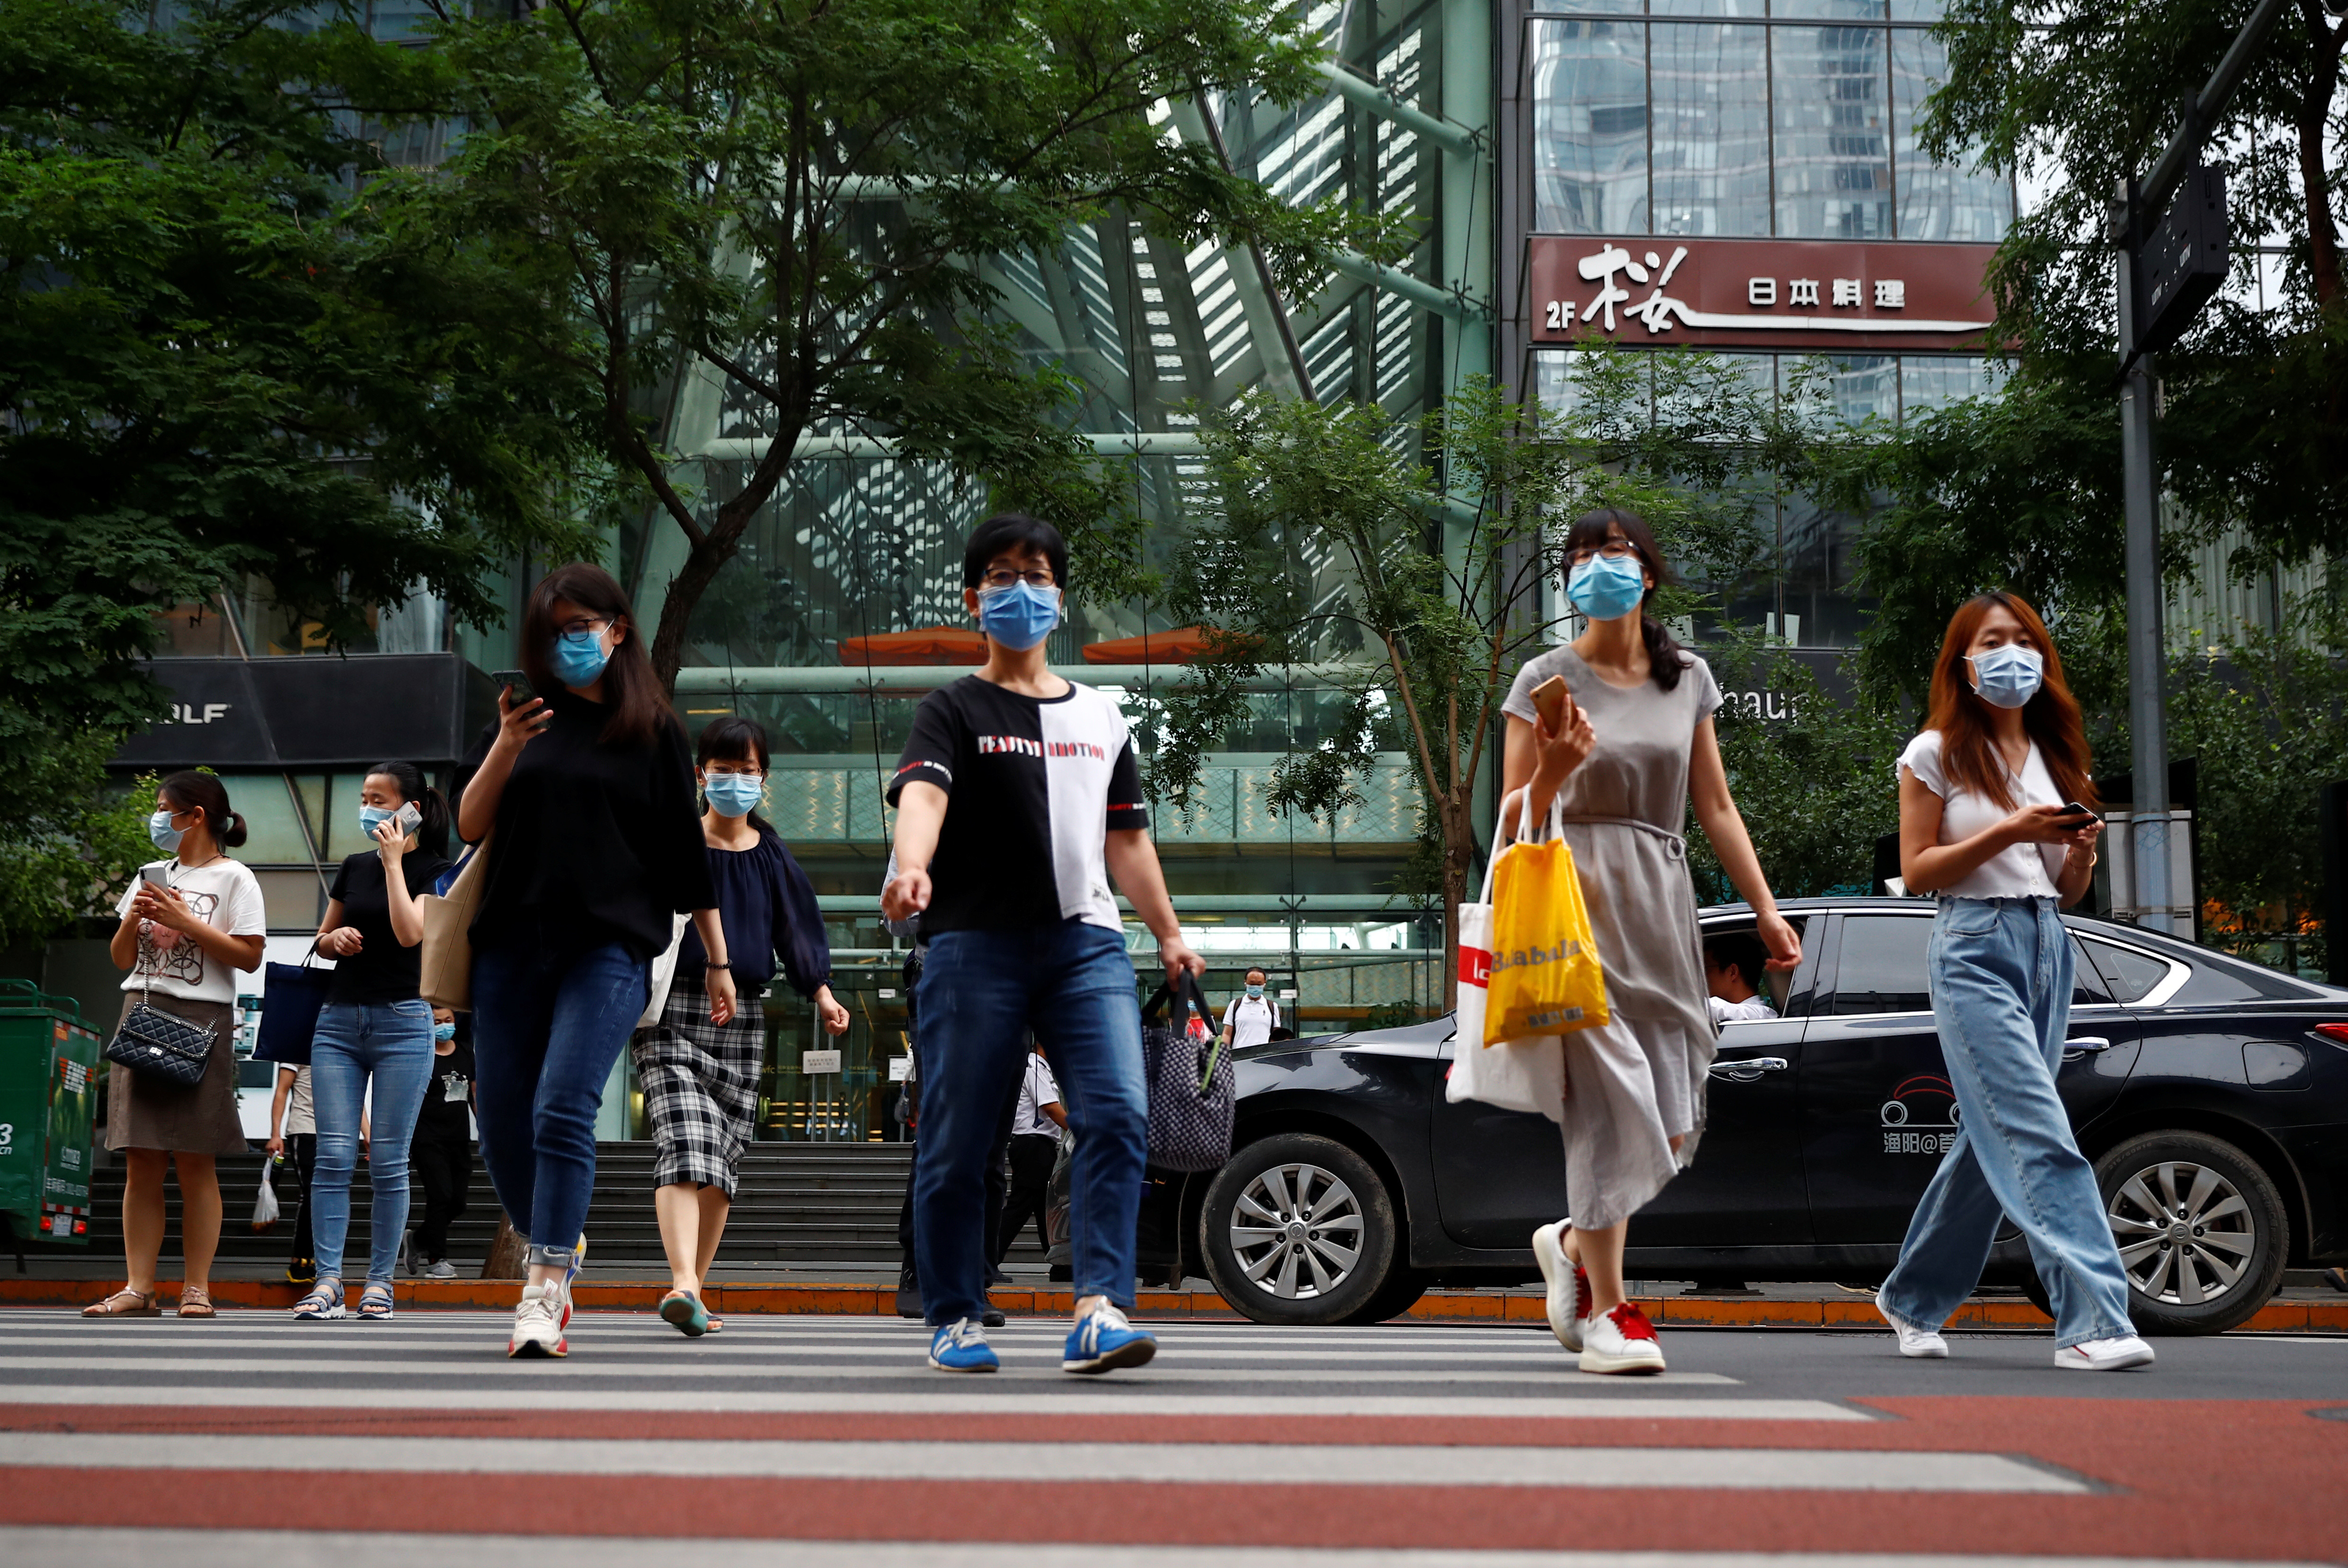 People wearing face masks leave an office building after work following a new outbreak of the coronavirus disease (COVID-19) in Beijing, China, June 29, 2020. REUTERS/Thomas Peter - RC2YIH9T7VOK